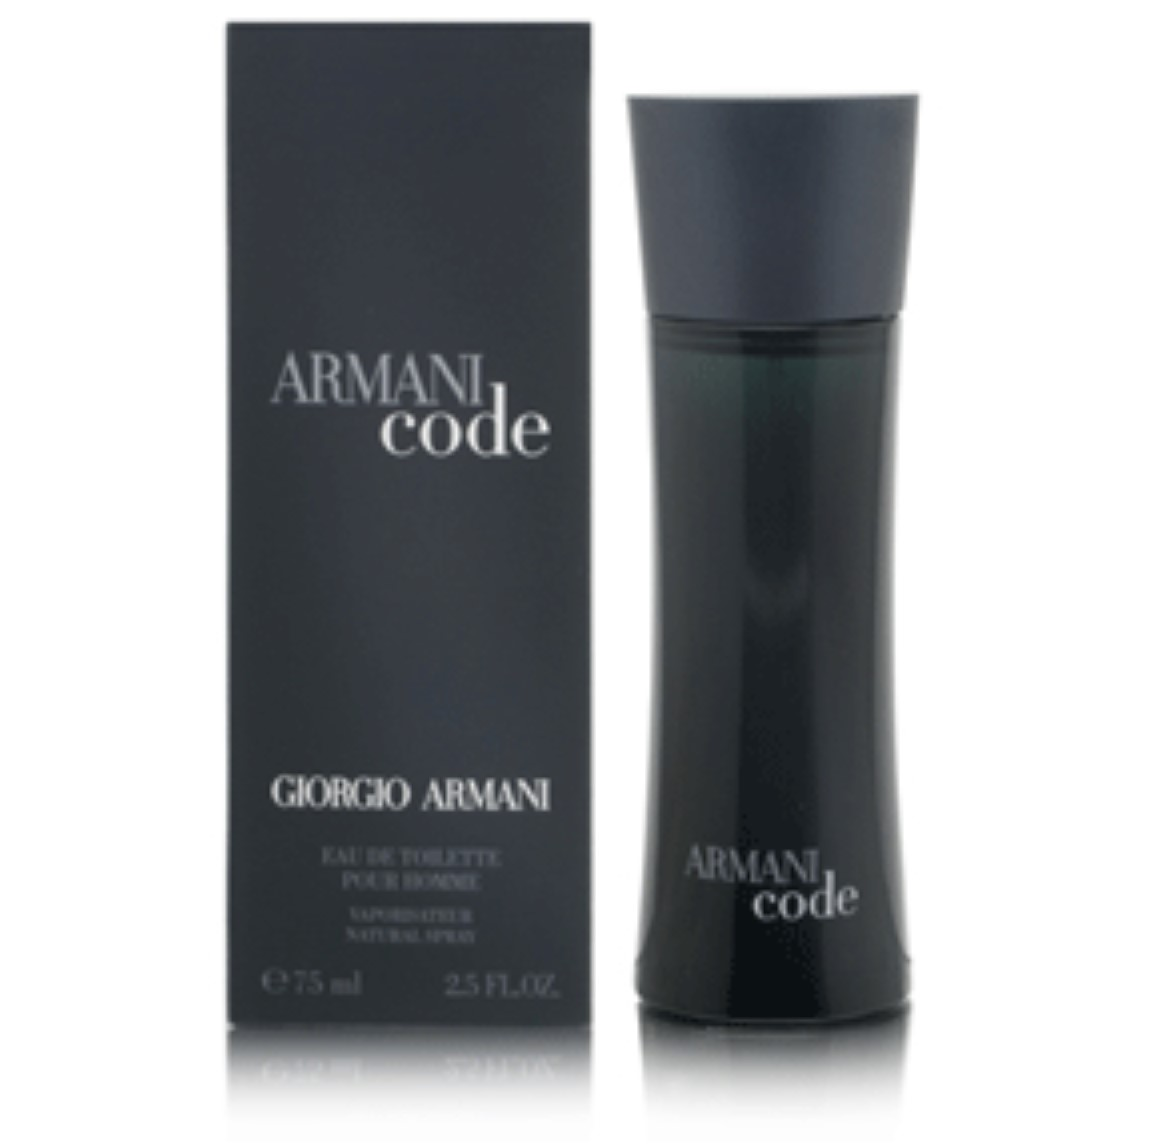 Armani Code for Men Eau de Toilette Spray, 2.5 fl oz